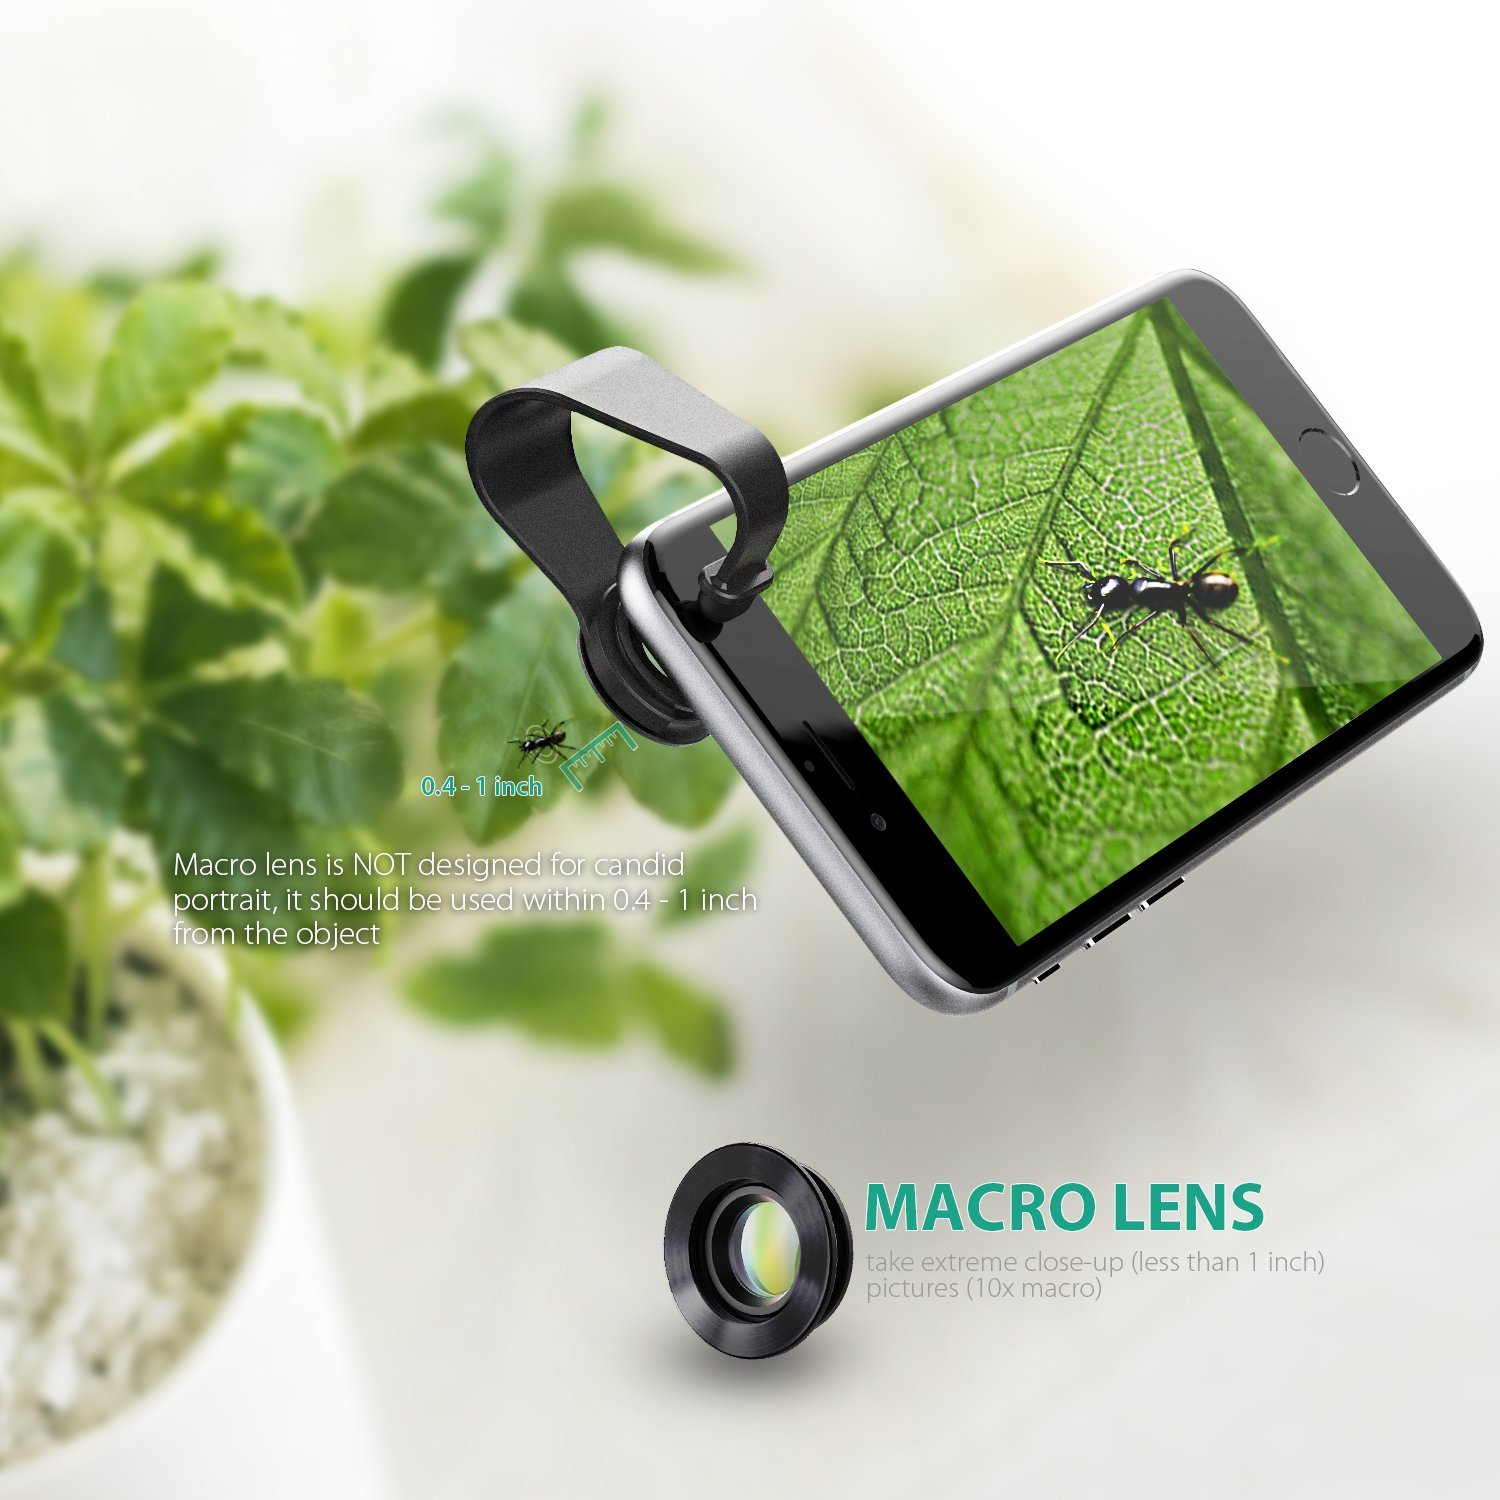 Aukey 3 in 1 micro lens